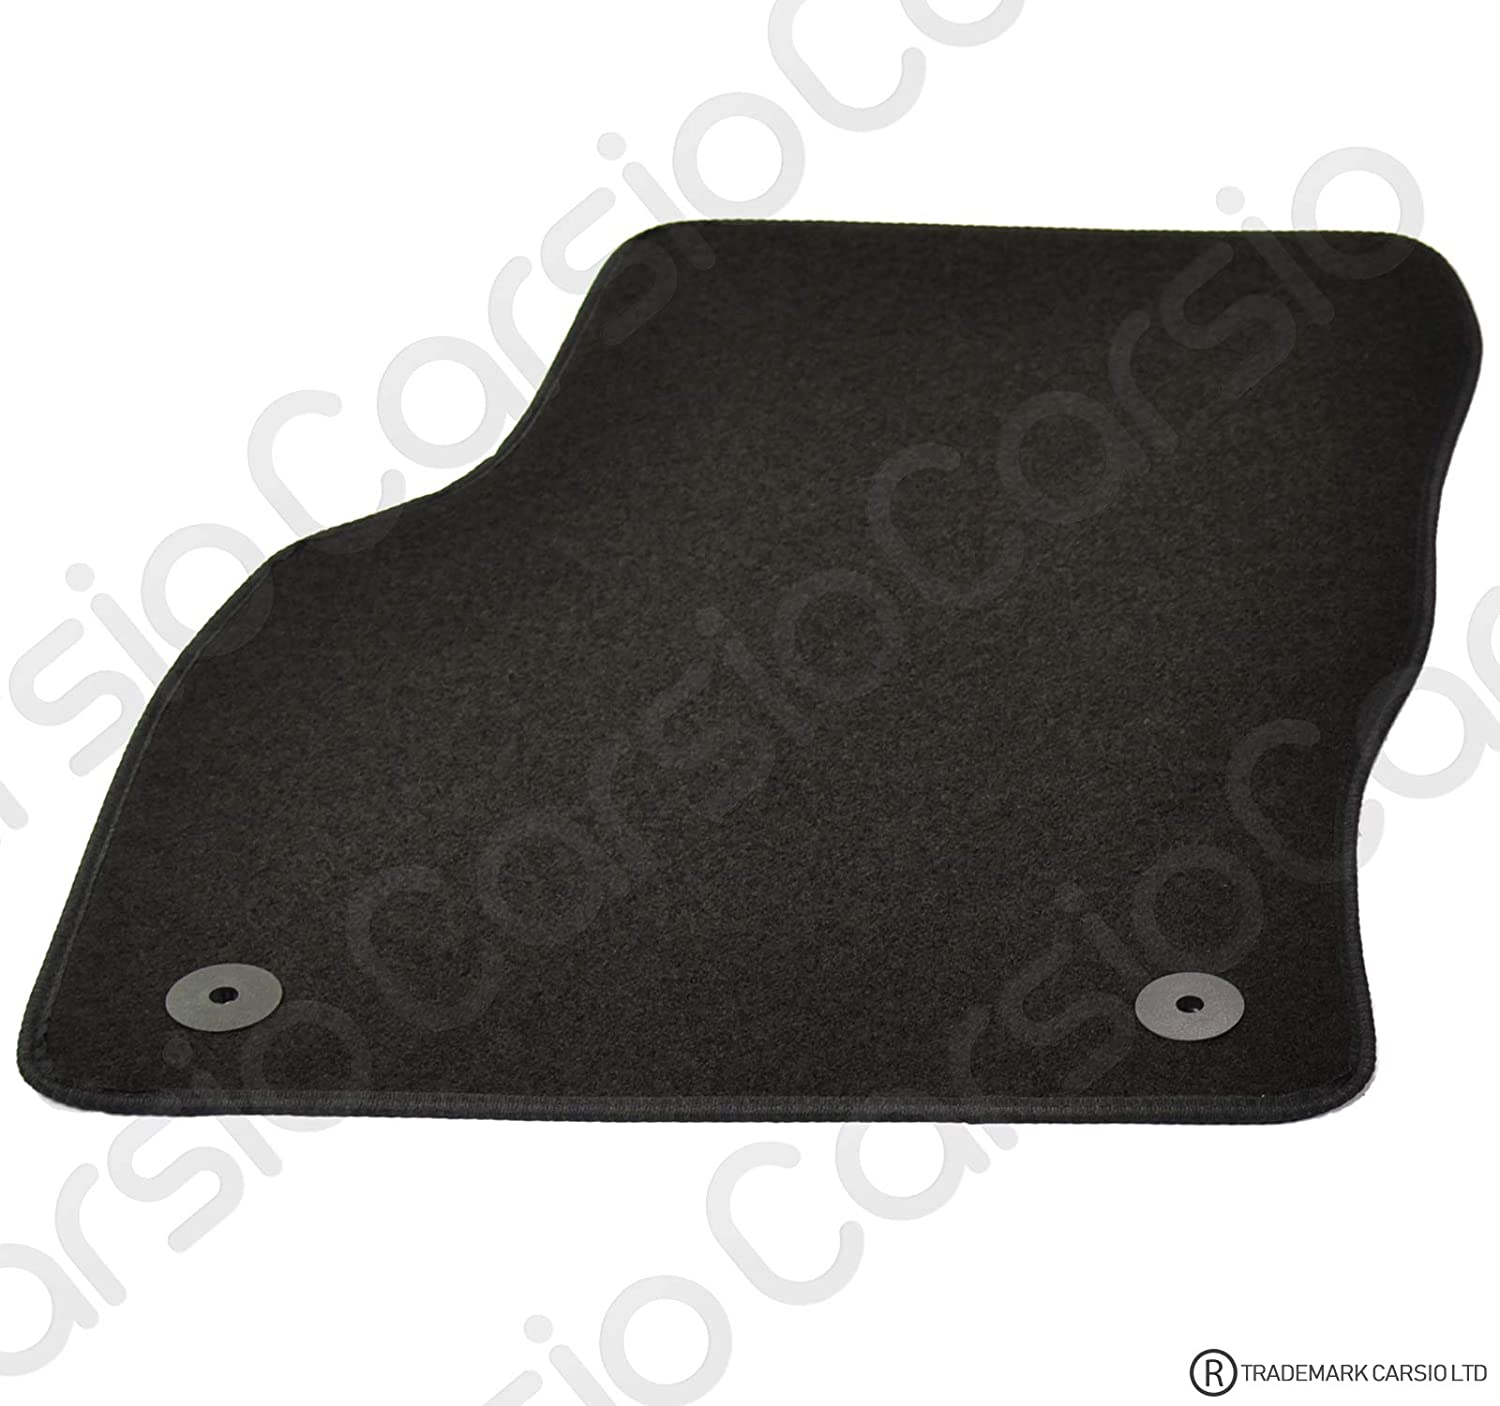 Carsio Tailored Black Carpet Car Mats for Skoda Octavia 2013 Onwards 4 Piece Set with 4 Clips